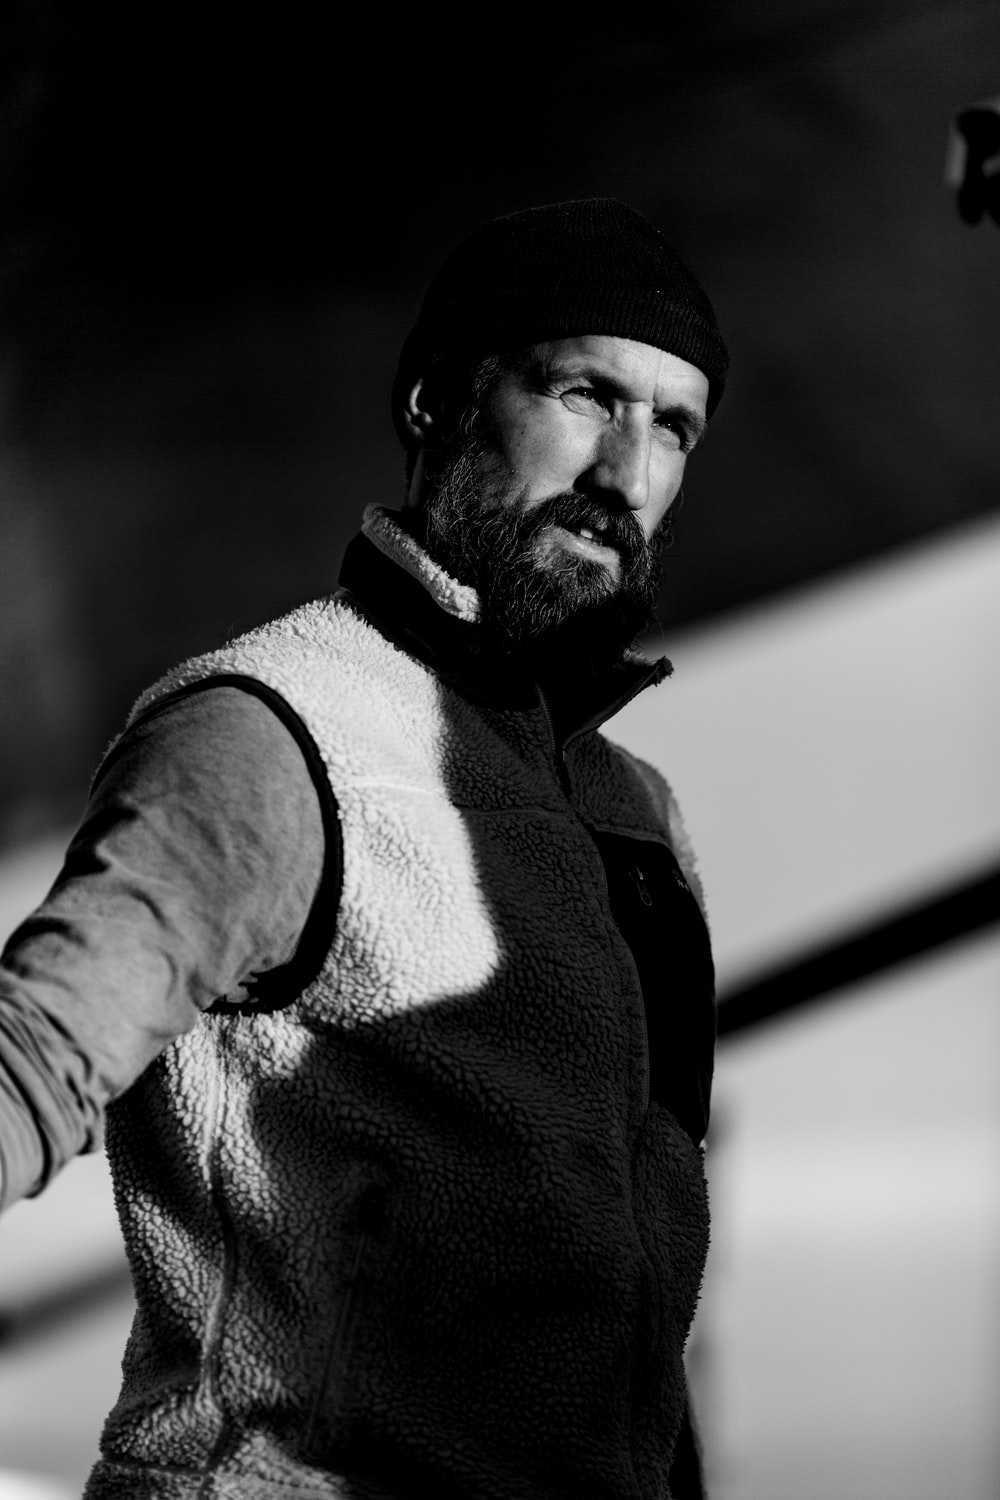 grayscale photography of man in sweater vest